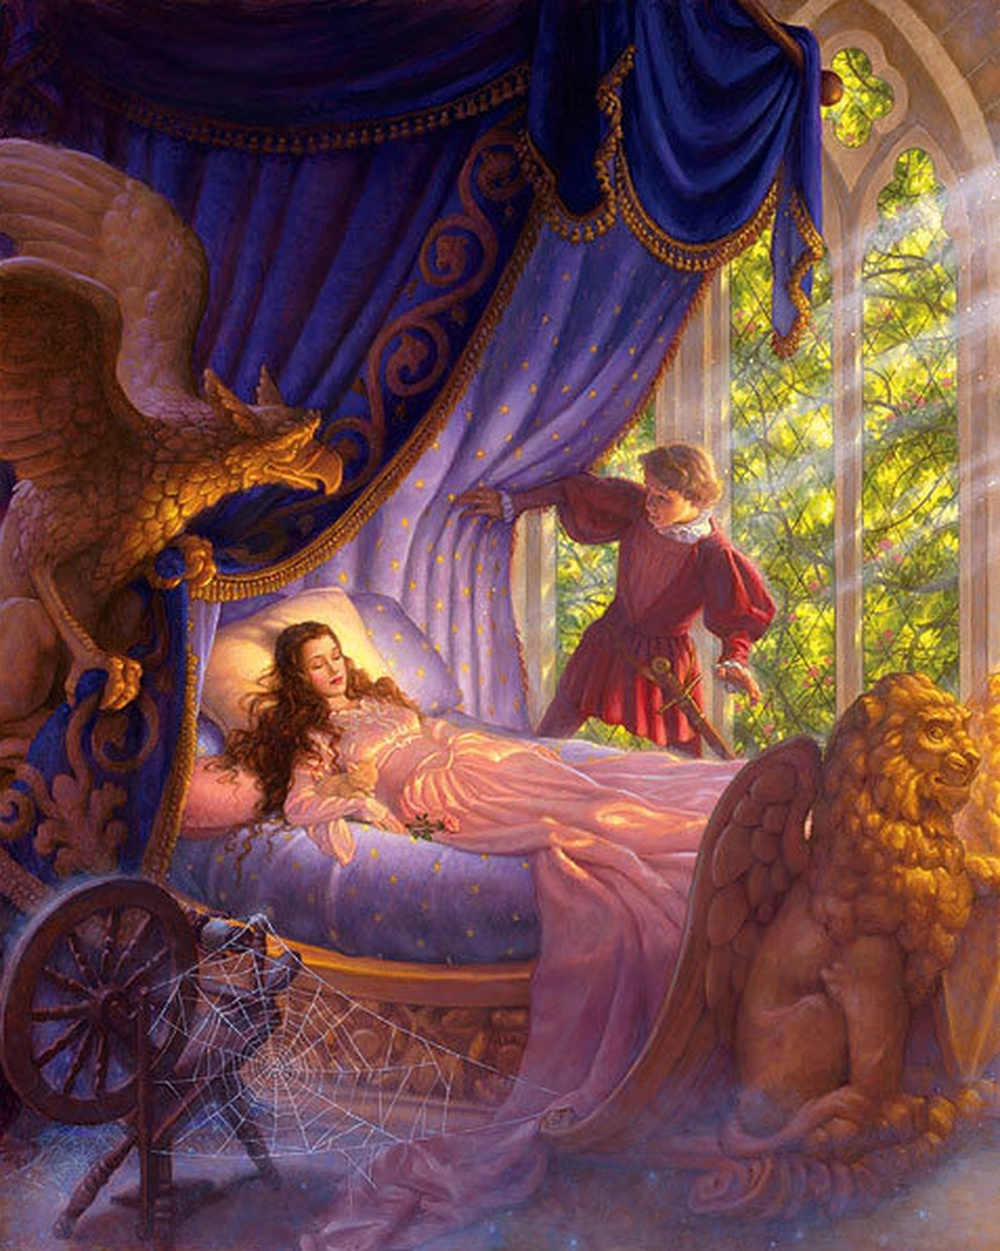 Fairy tales have a lot to teach children about life, and make them smart